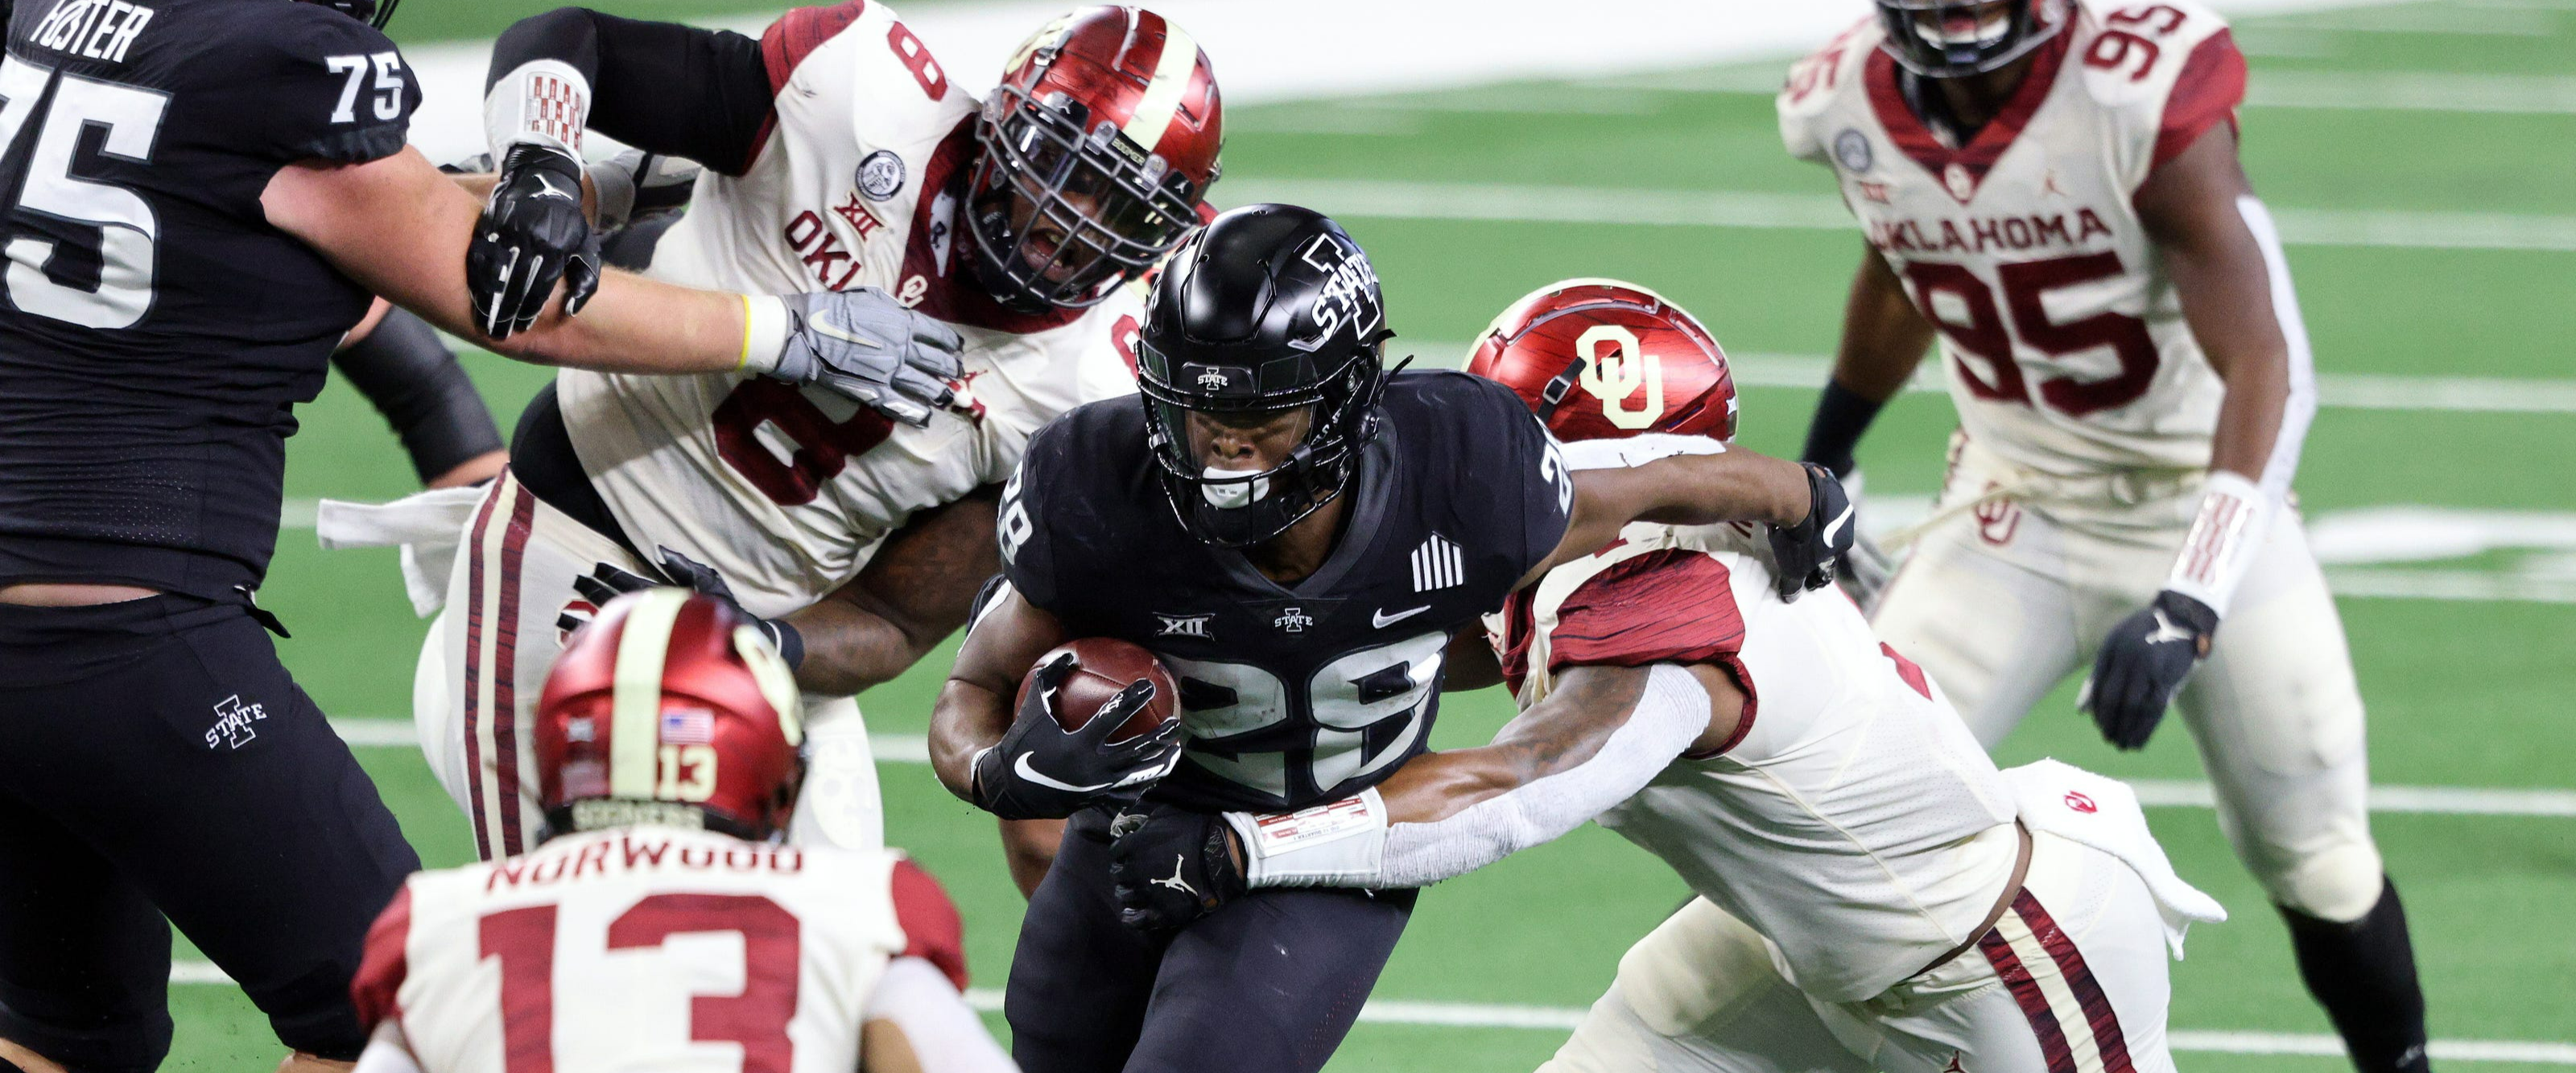 Can Oklahoma or Iowa State Crash the Playoff and Win it All?